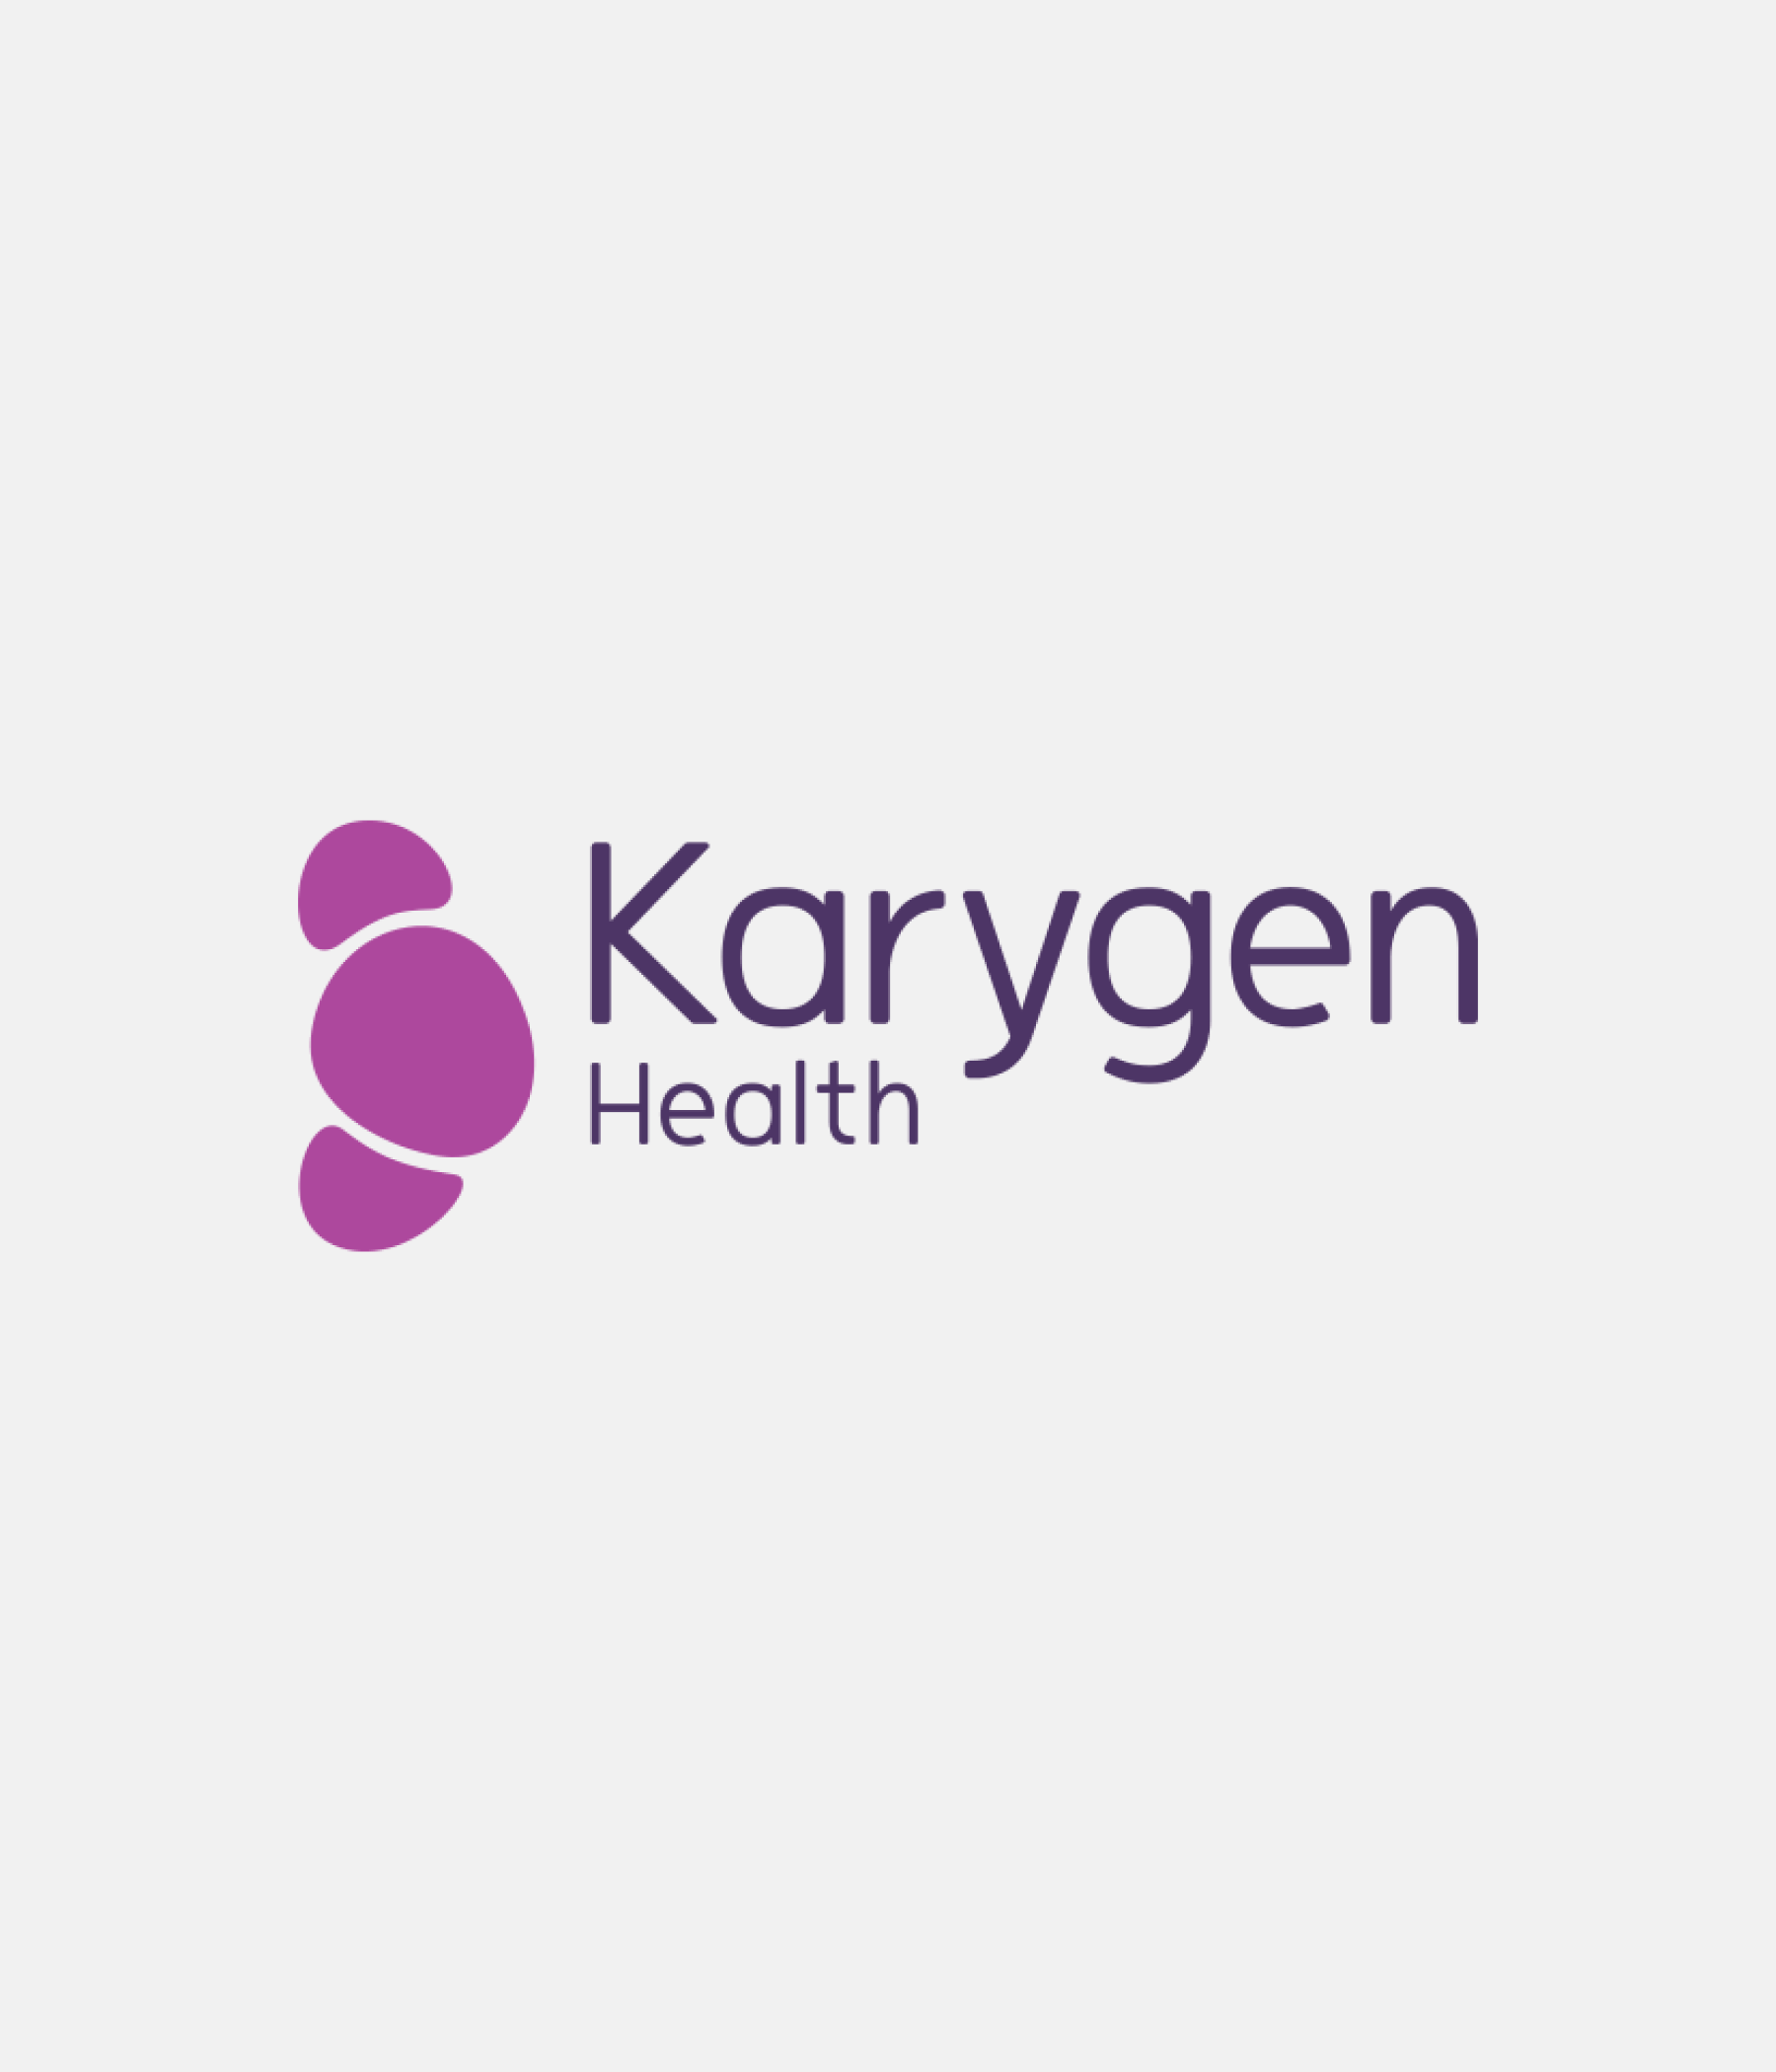 Karygen Health - Health & Wellness